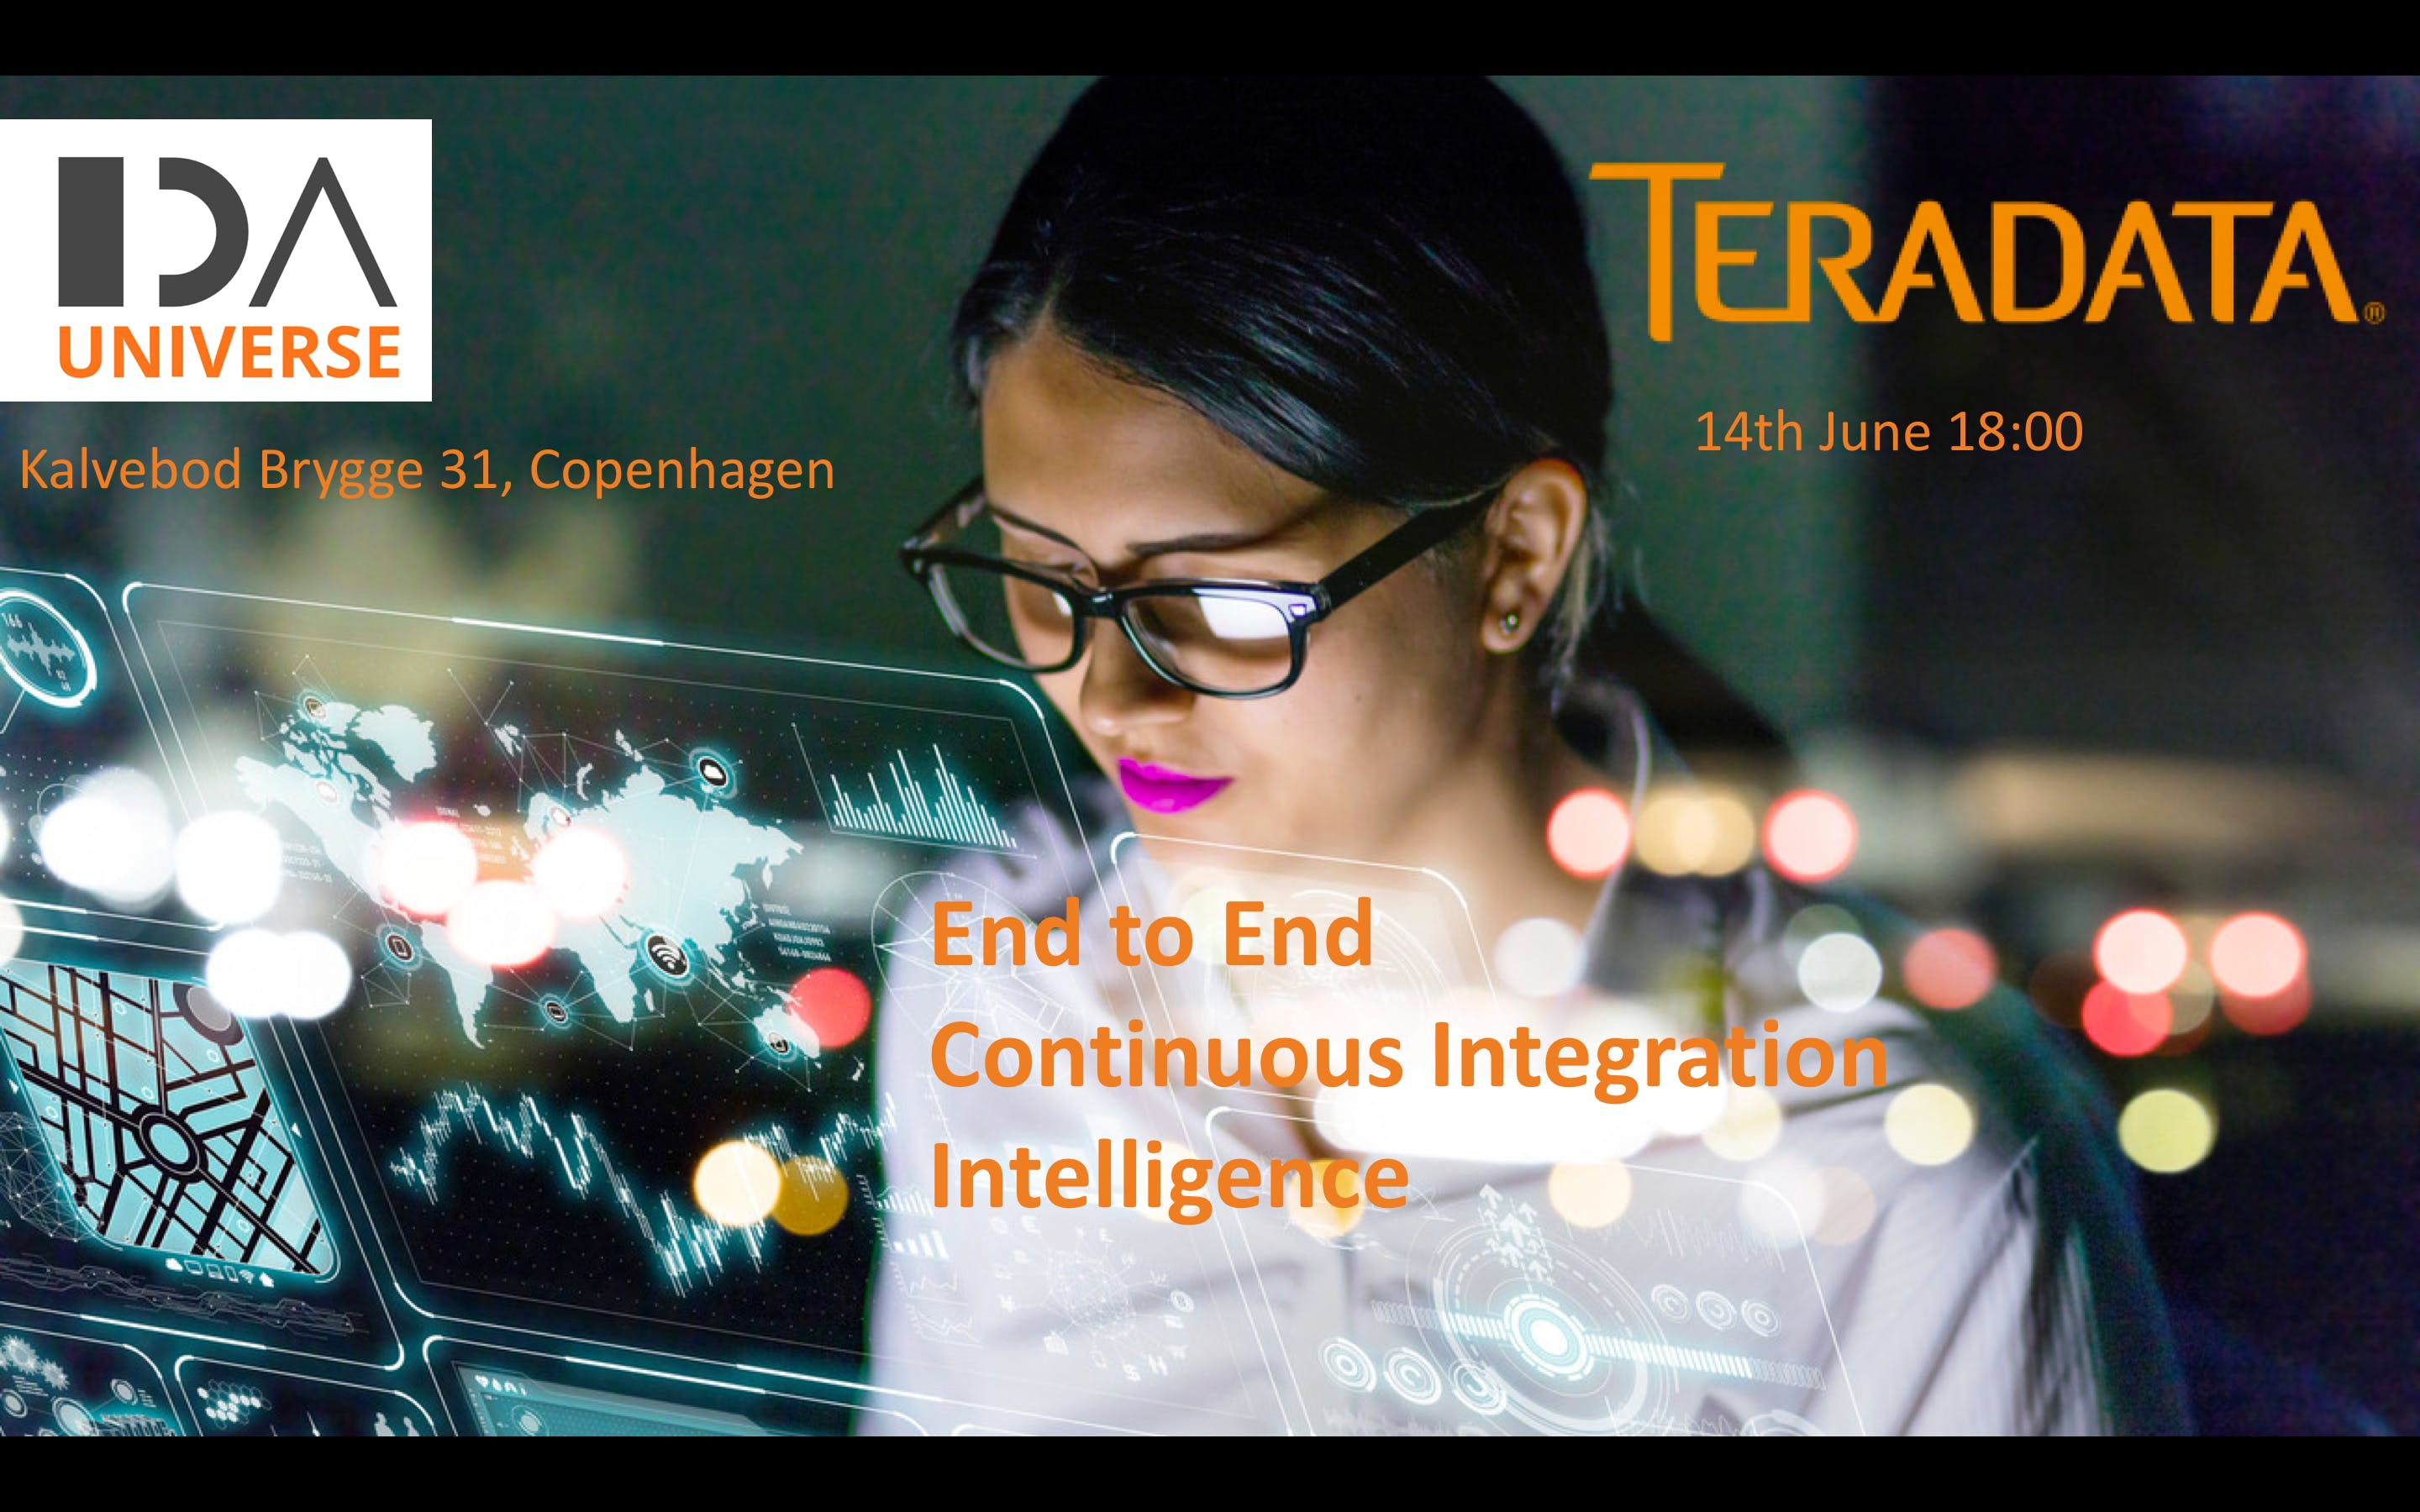 End to End Continuous Integration Intelligence